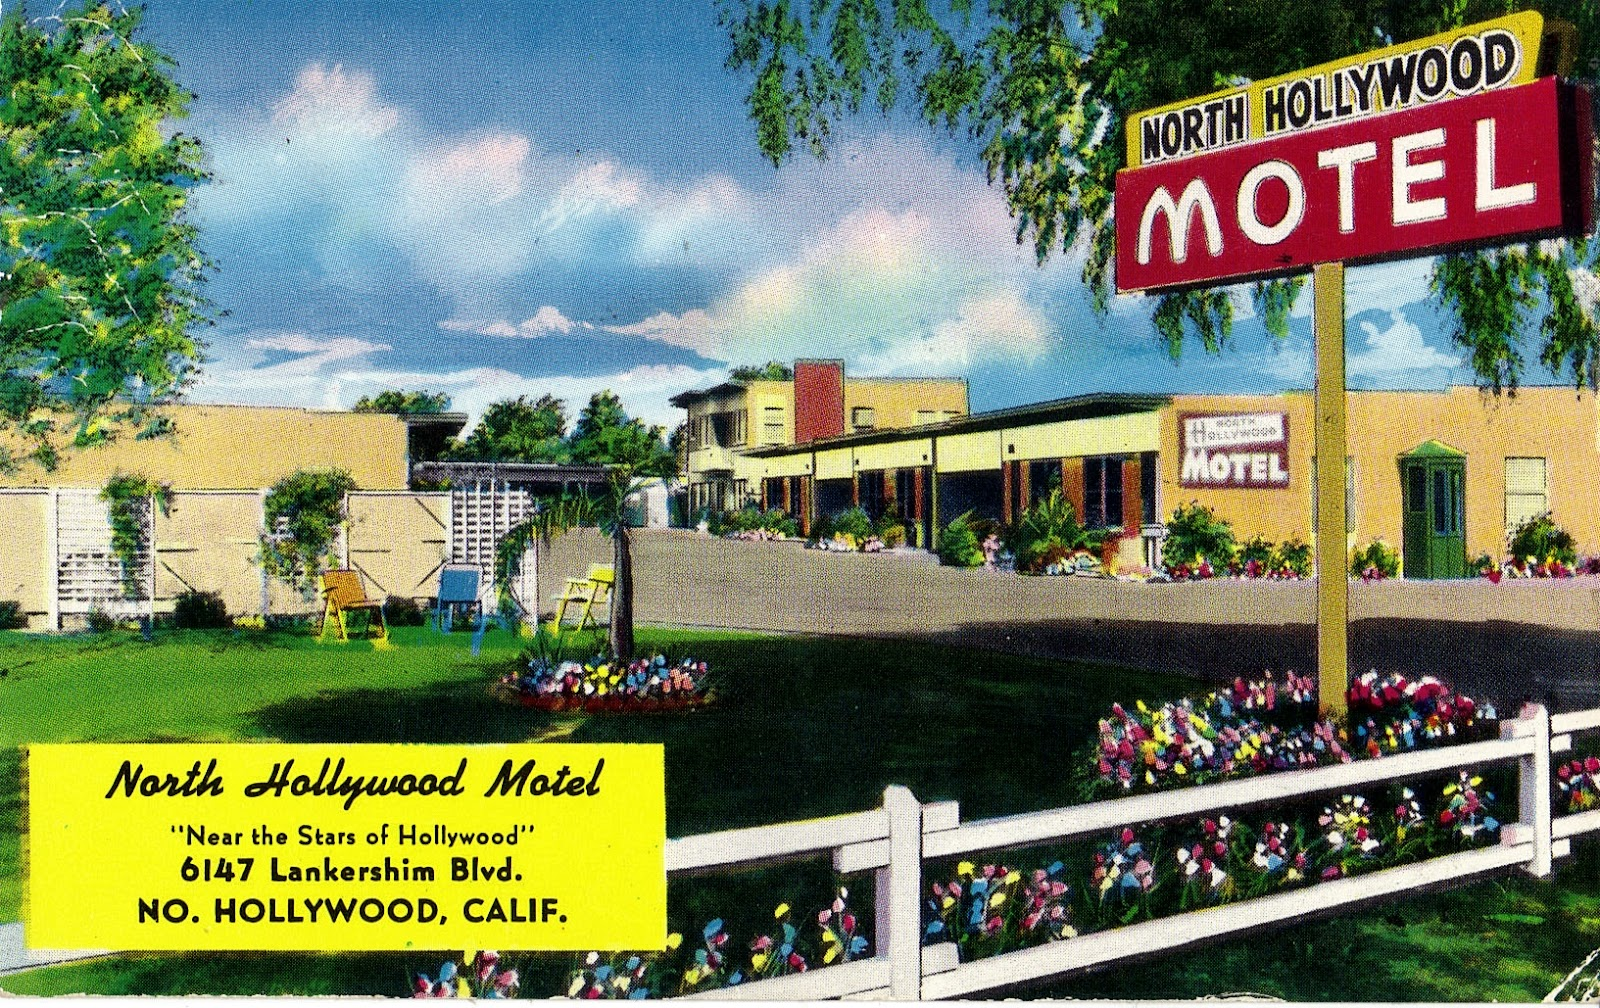 Hollywood Motel Celebrity Homes North Hollywood Motel Postcard